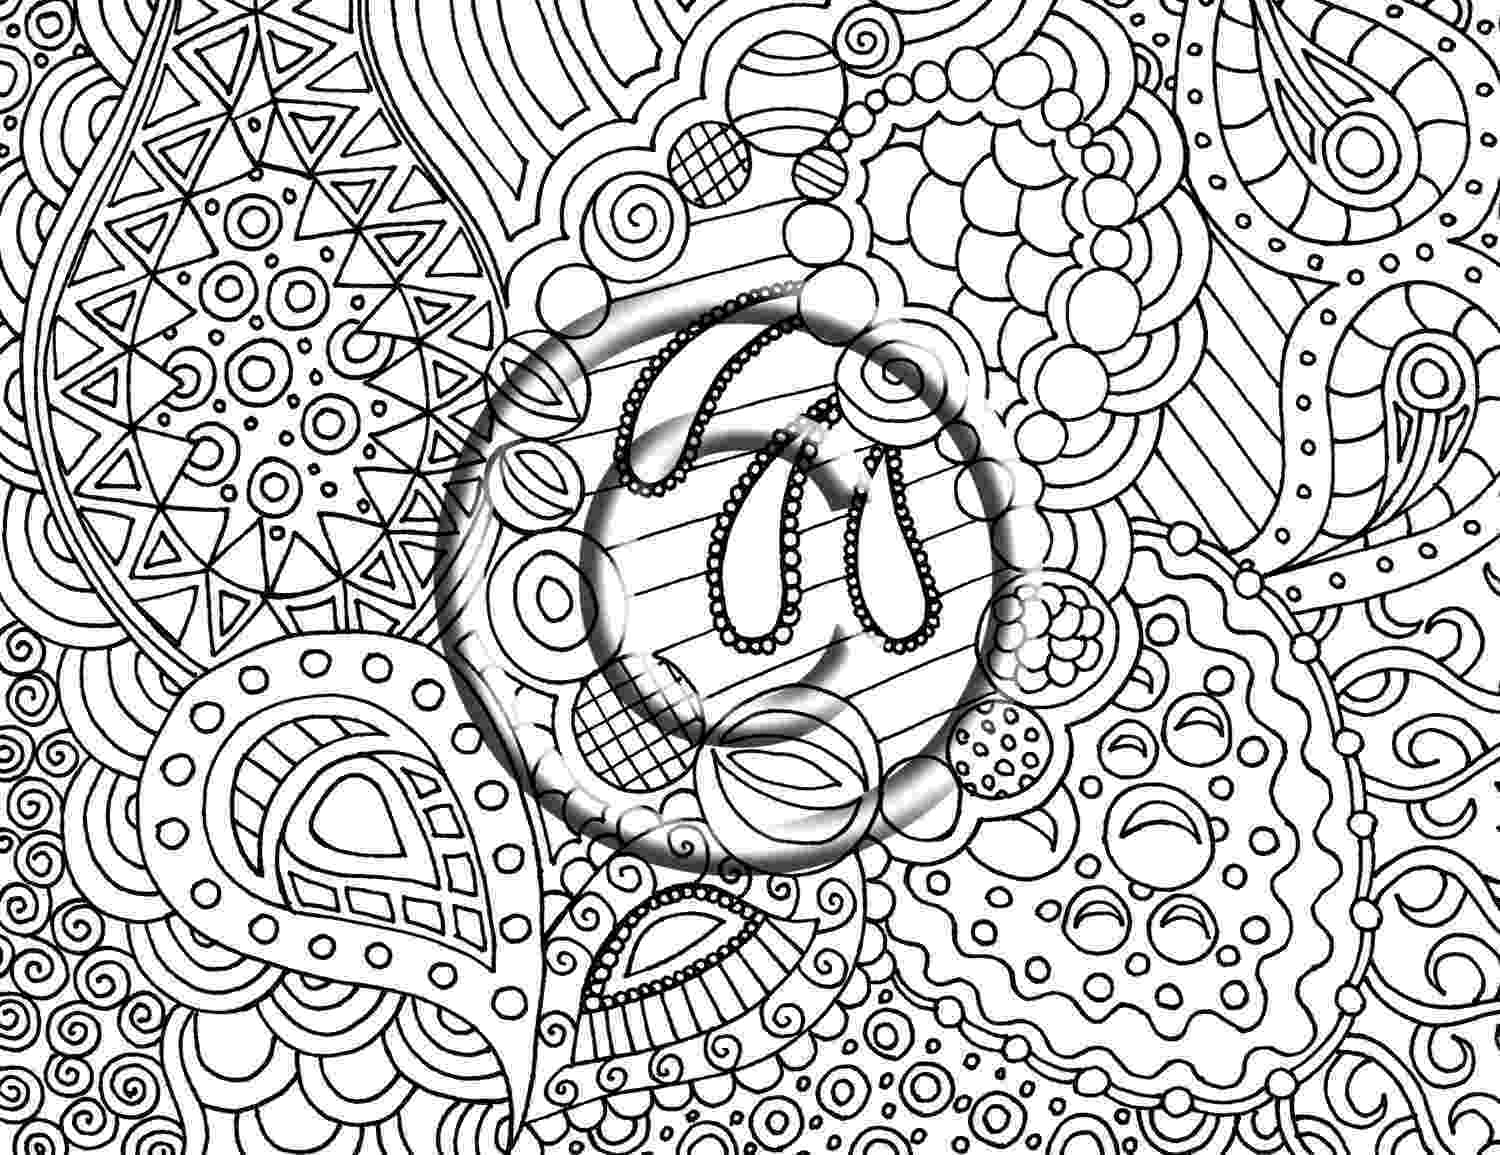 psychedelic colouring pages psychedelic coloring pages to download and print for free psychedelic colouring pages 1 1